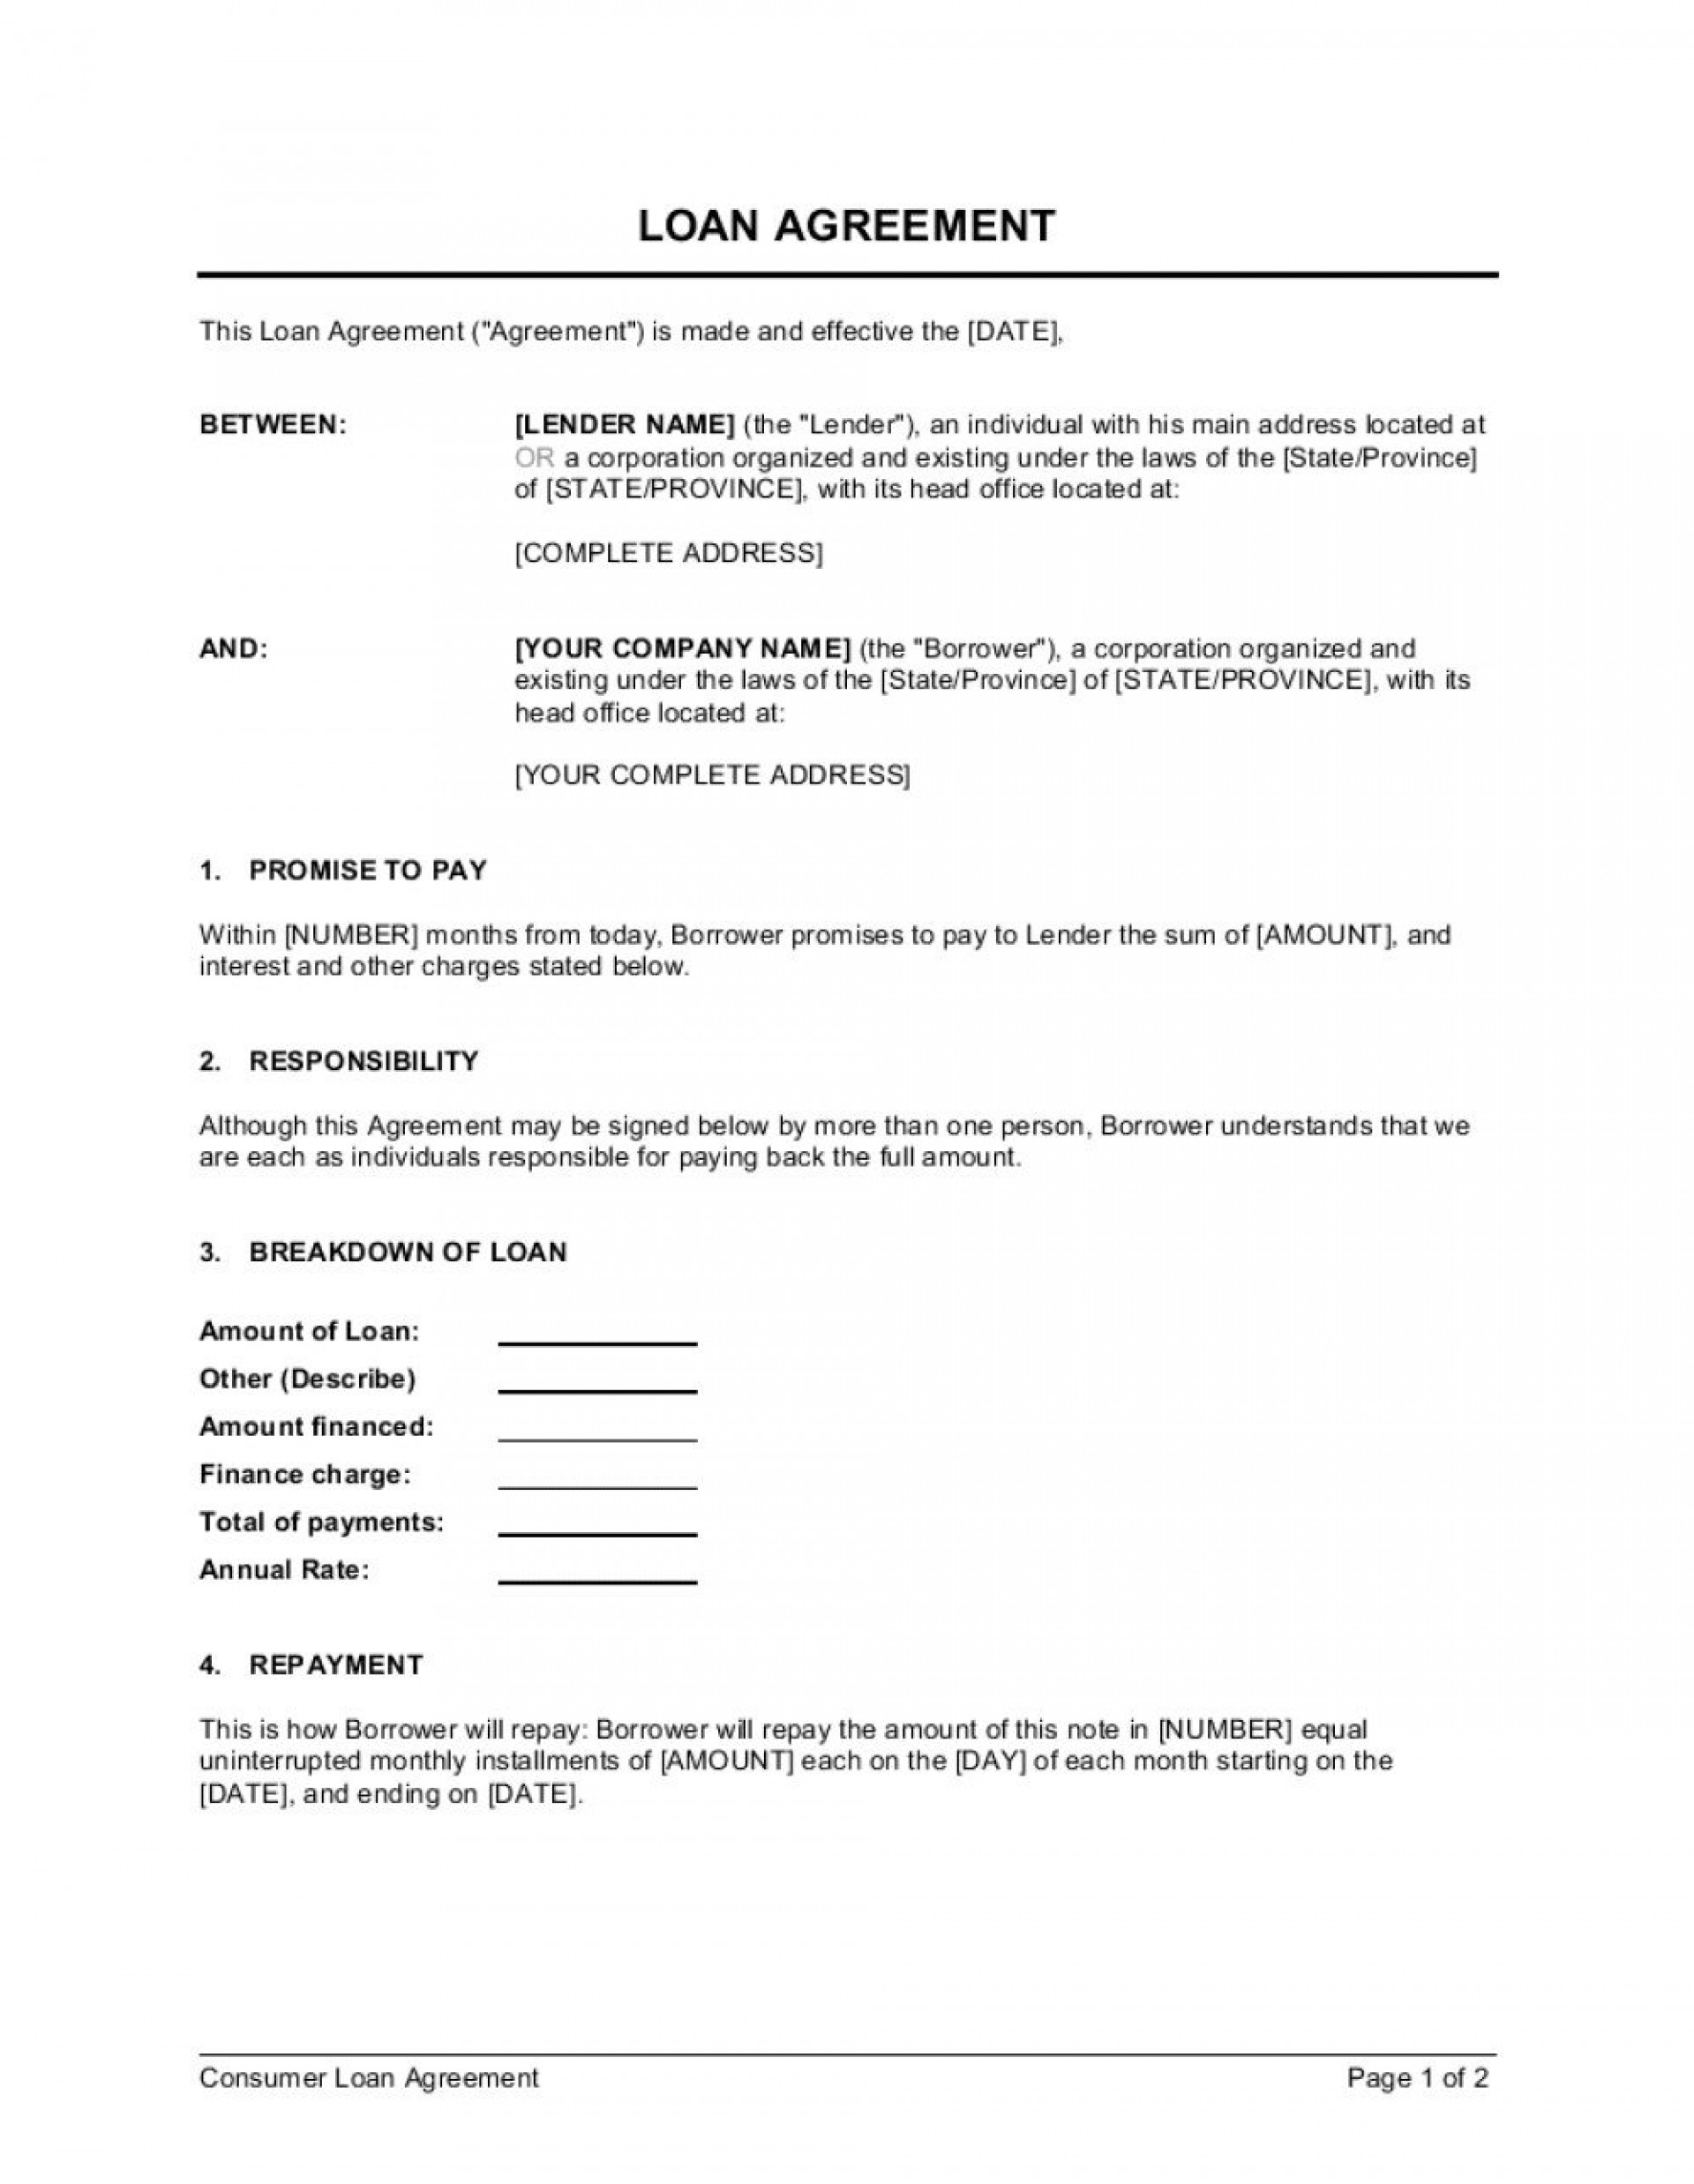 003 Phenomenal Personal Loan Agreement Template Photo  Contract Free Word Format South Africa1920